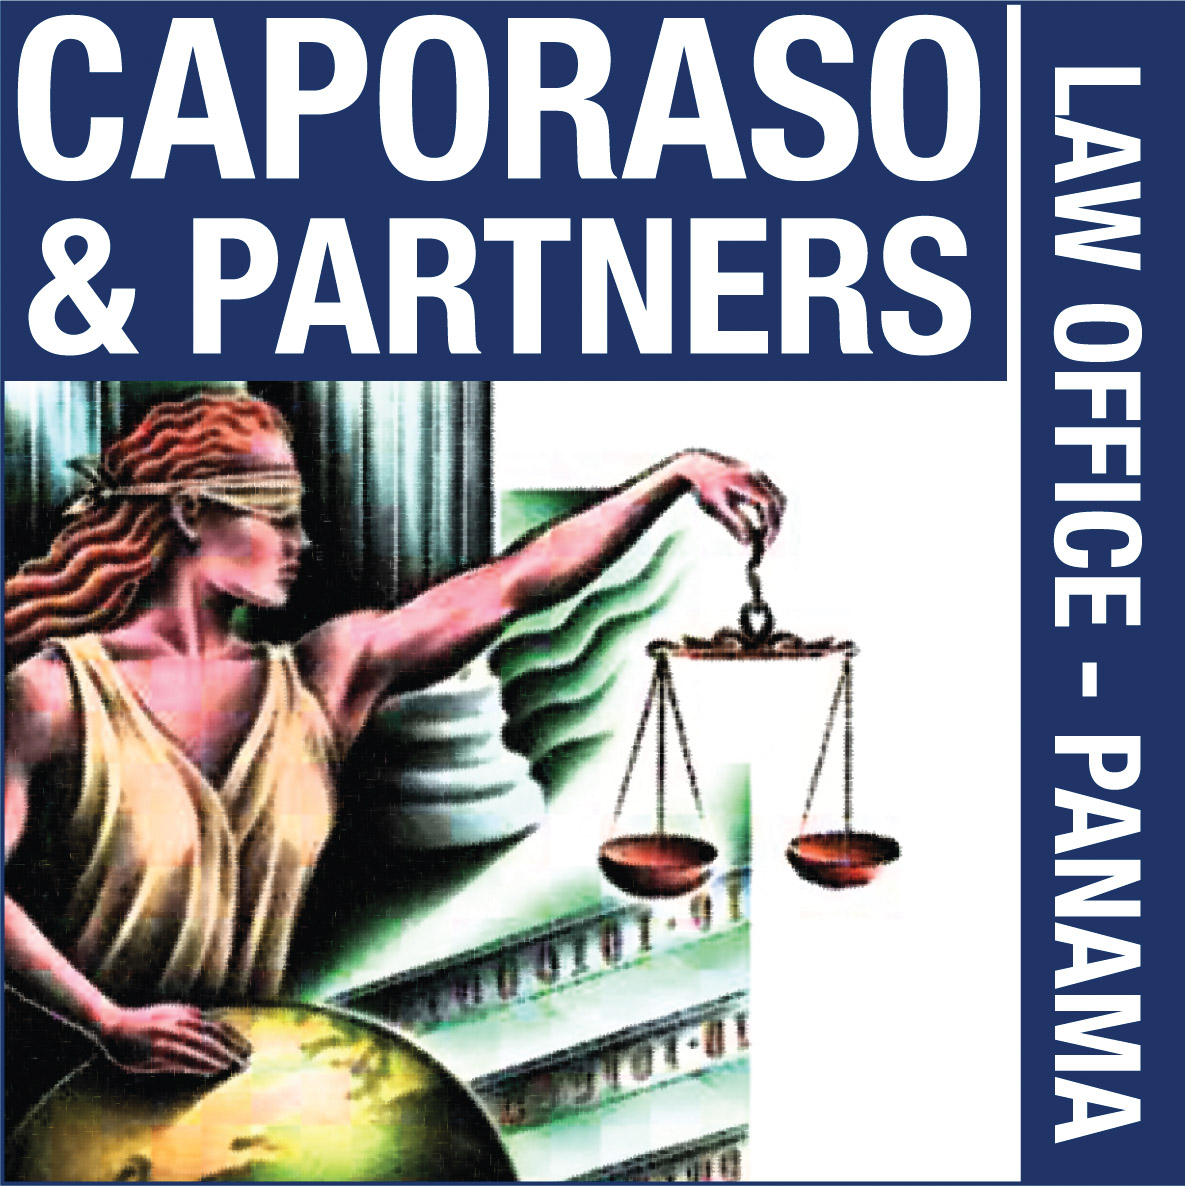 Caporaso and Partners